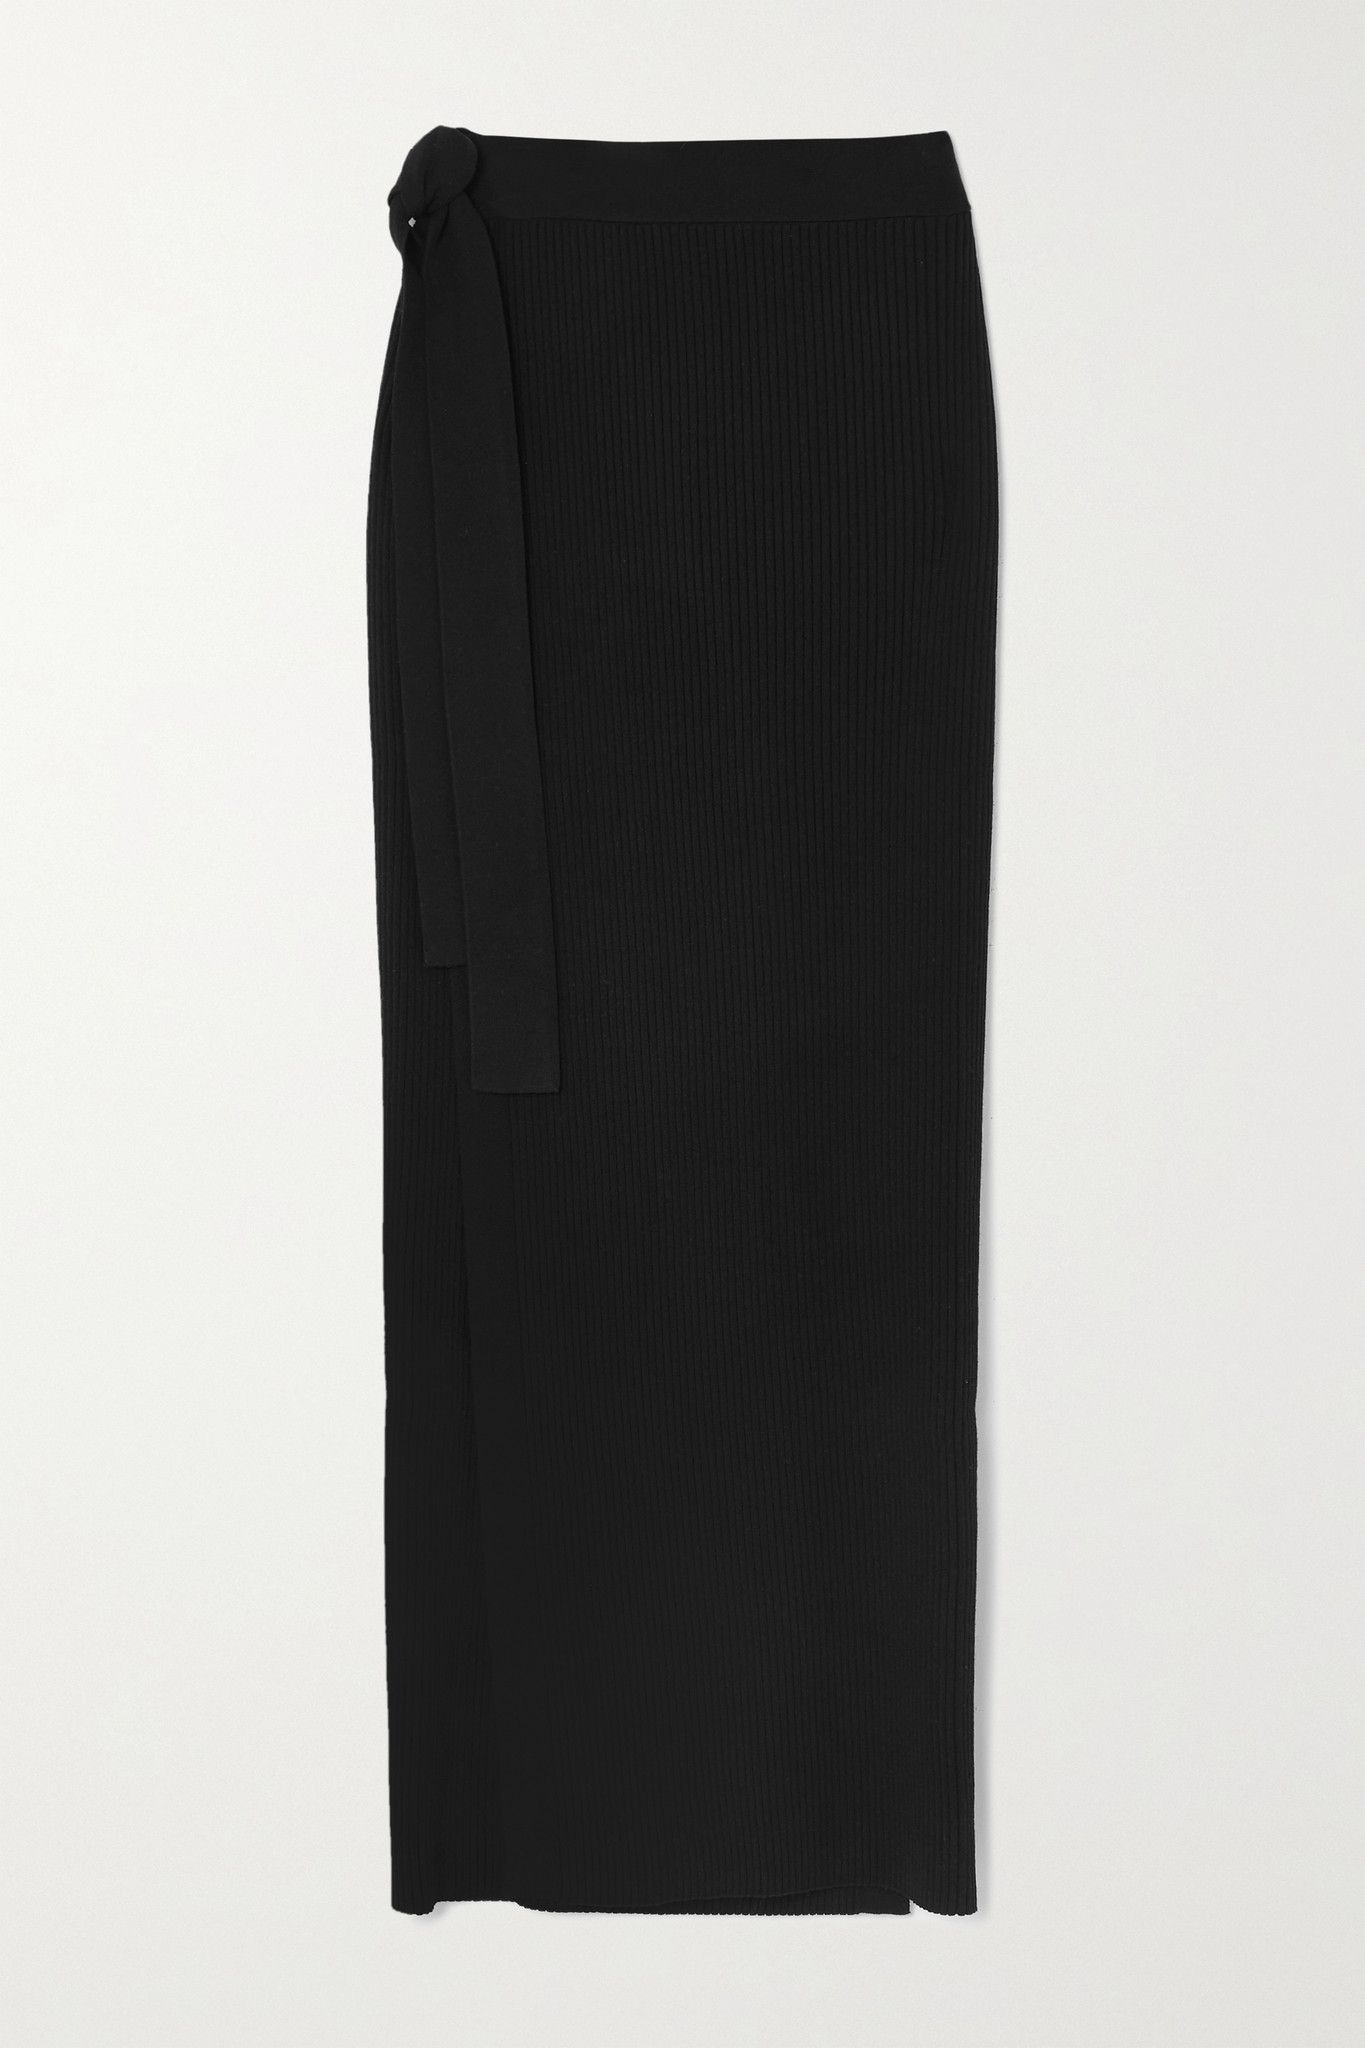 BY MALENE BIRGER - Fauris Ribbed-knit Midi Skirt - Black - small